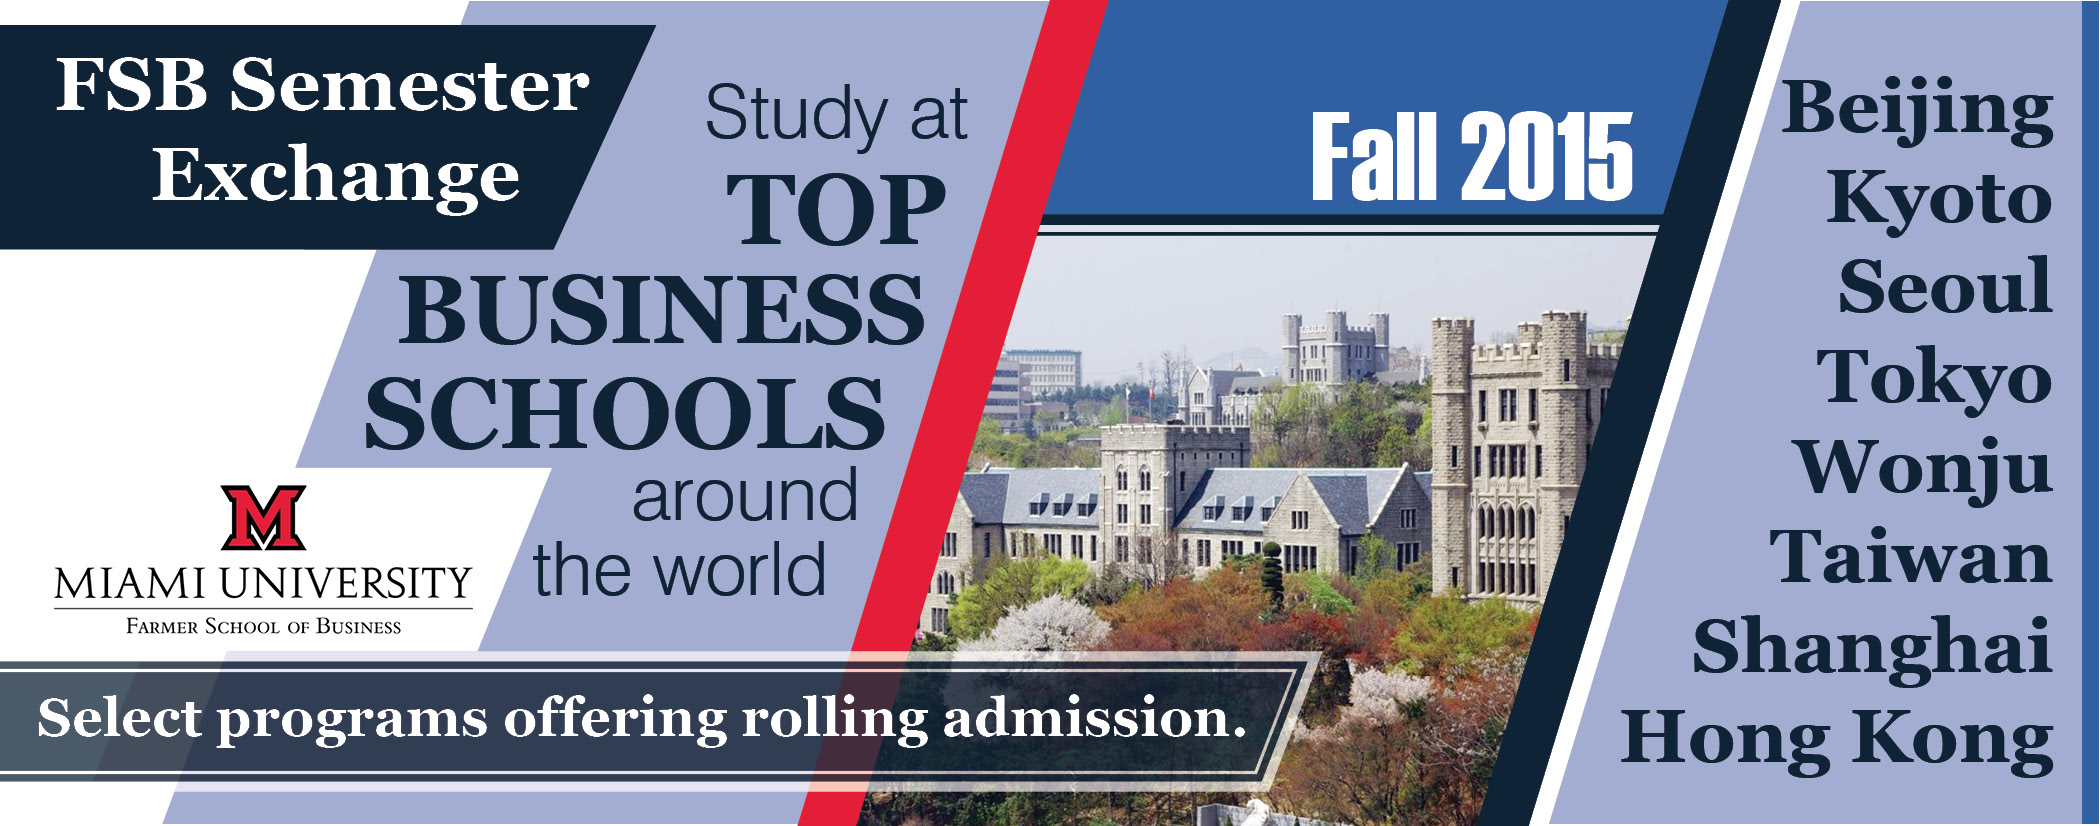 FSB Semester Exchange - Study at TOP BUSINESS SCHOOLS AAROUND THE WORLD.  Select programs offering rolling admission.  Beijing, Kyoto, Seoul, Tokyo, Wonju, Tiawan, Shanghai, Hong Kong.